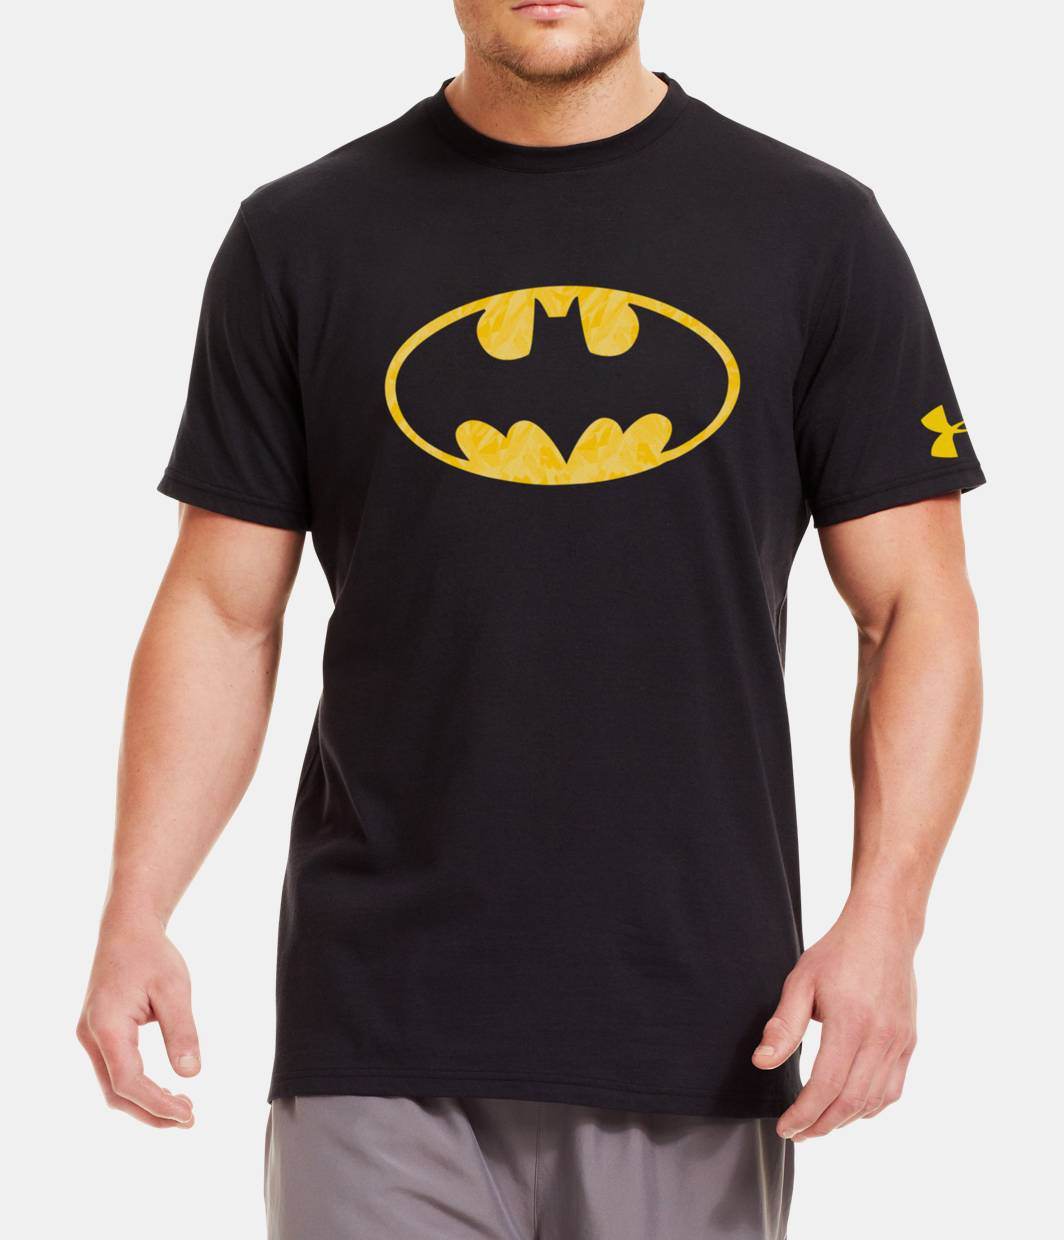 Black t shirt batman - Black Zoomed Image